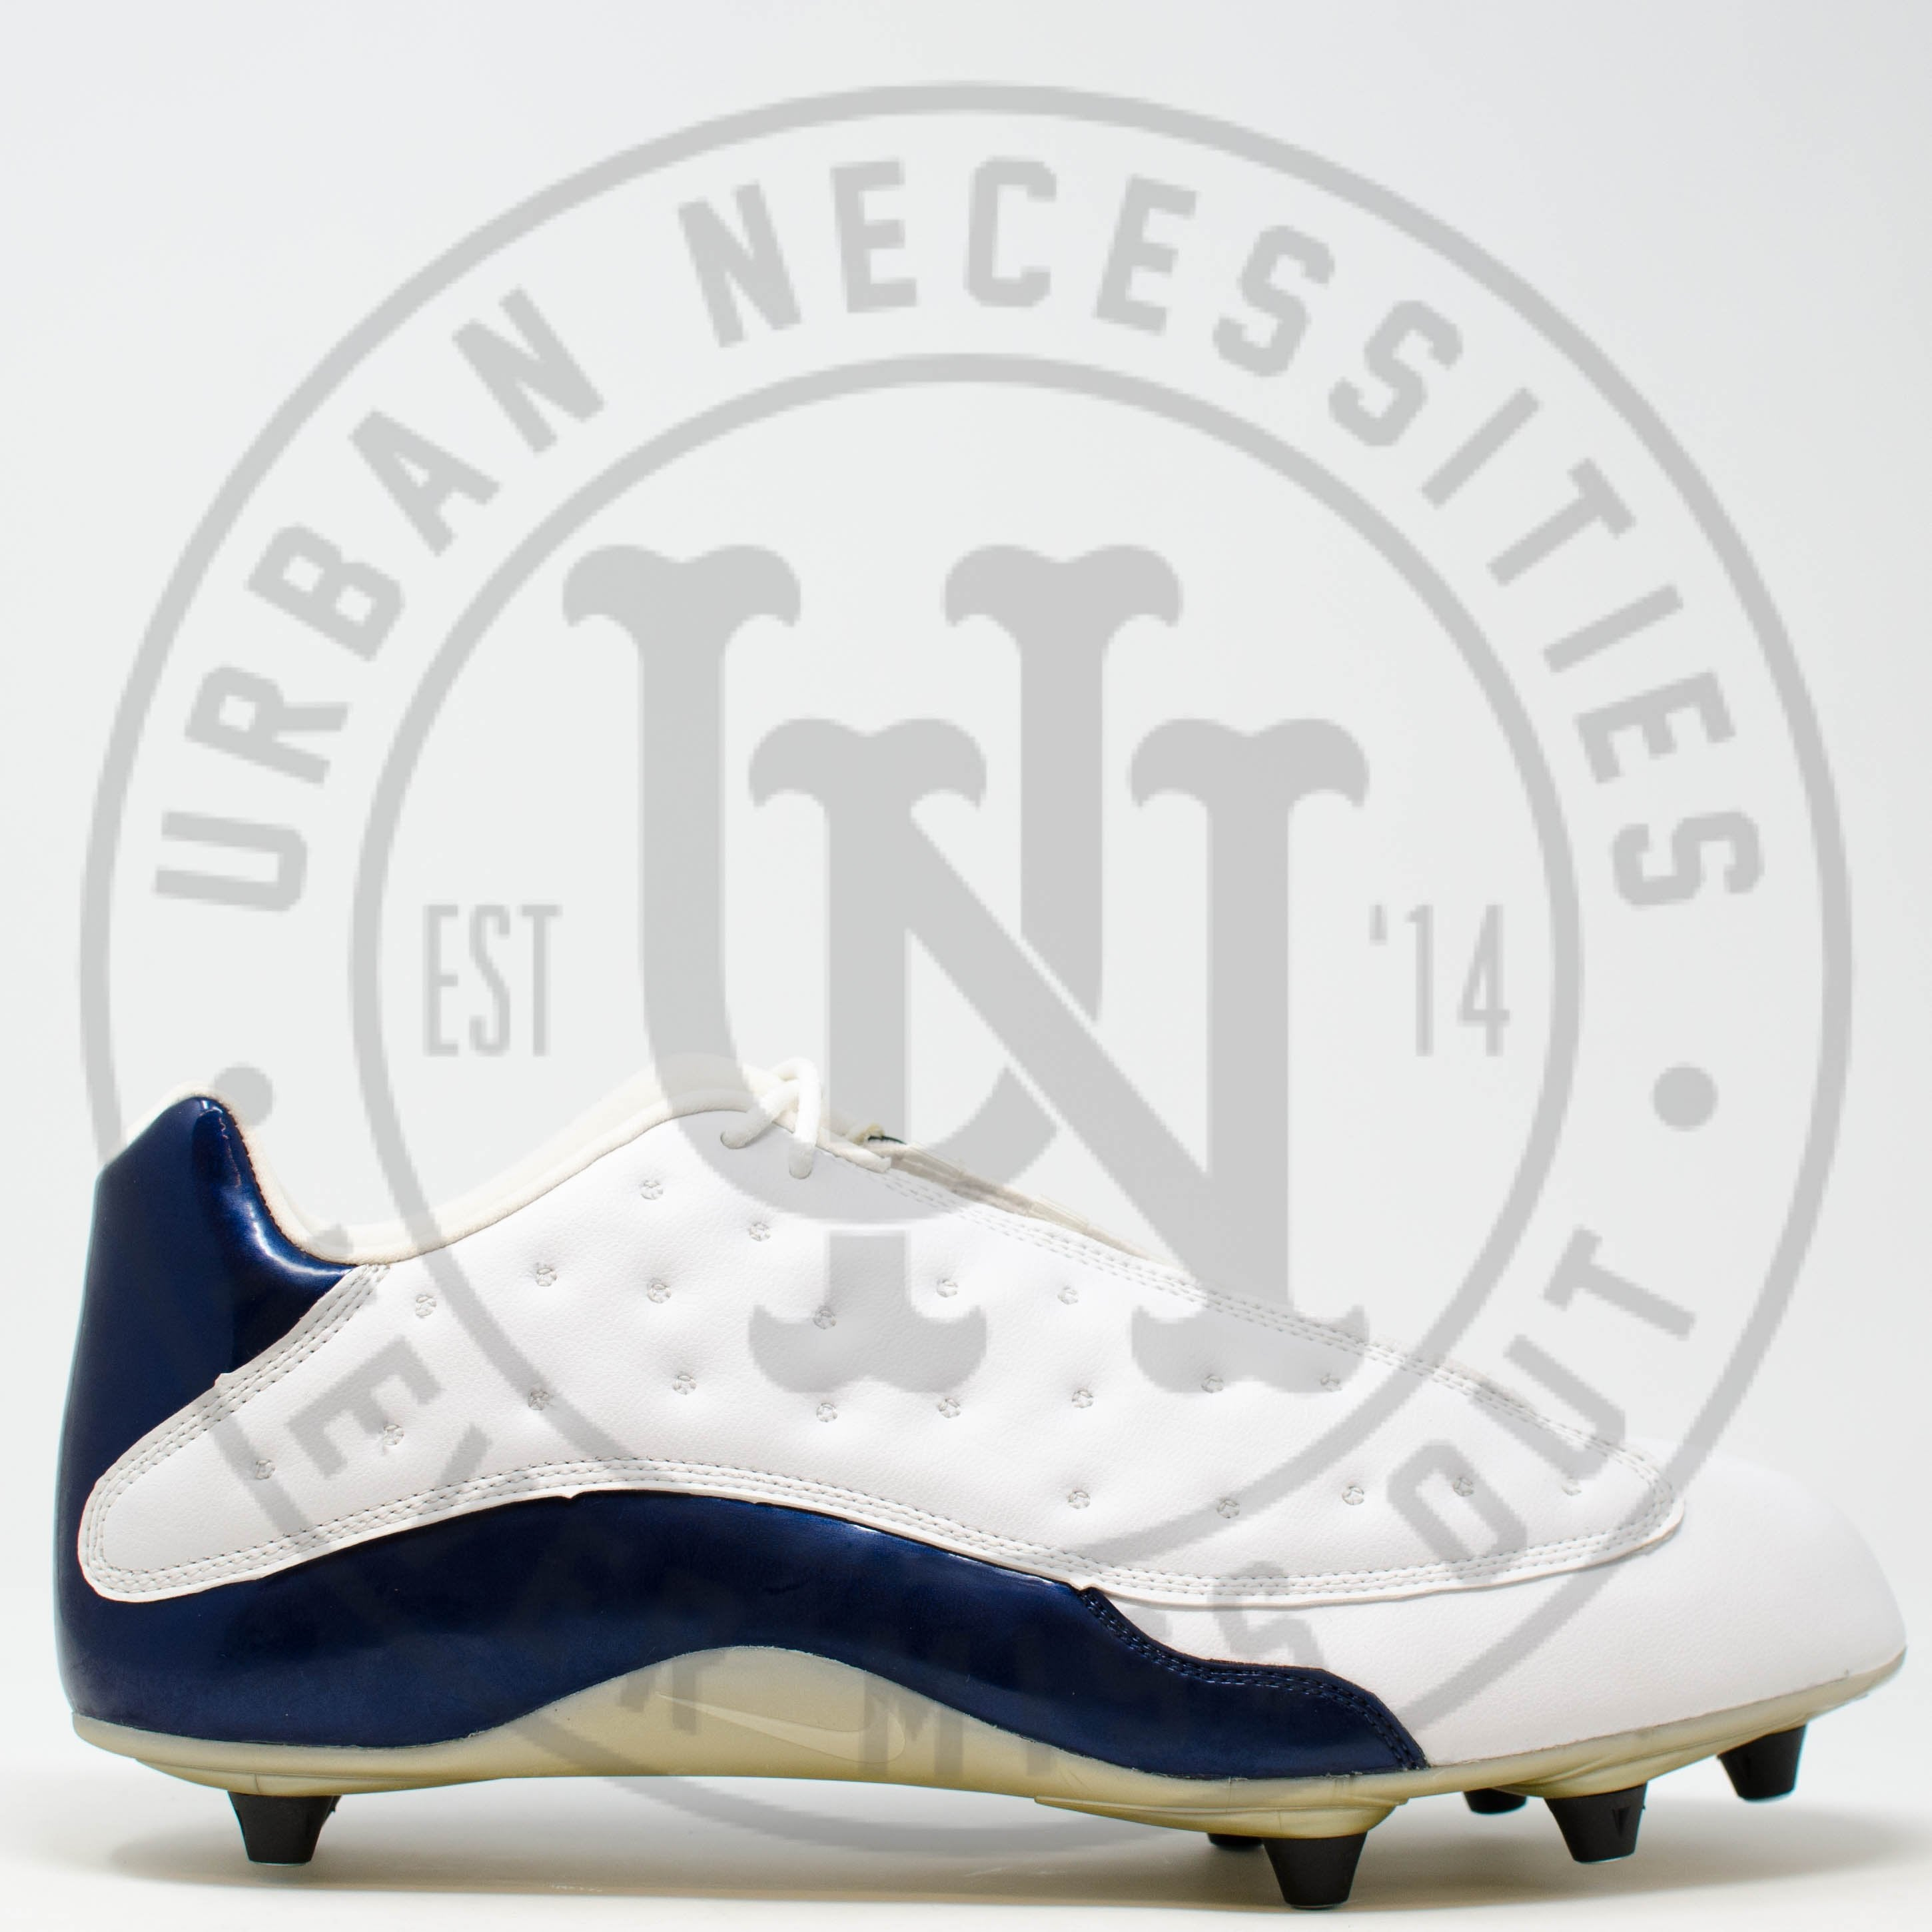 magasin en ligne e4b9b 9a457 Air Jordan 13 Low Cleat PE 'Eddie George' -CLF107-M10-C1